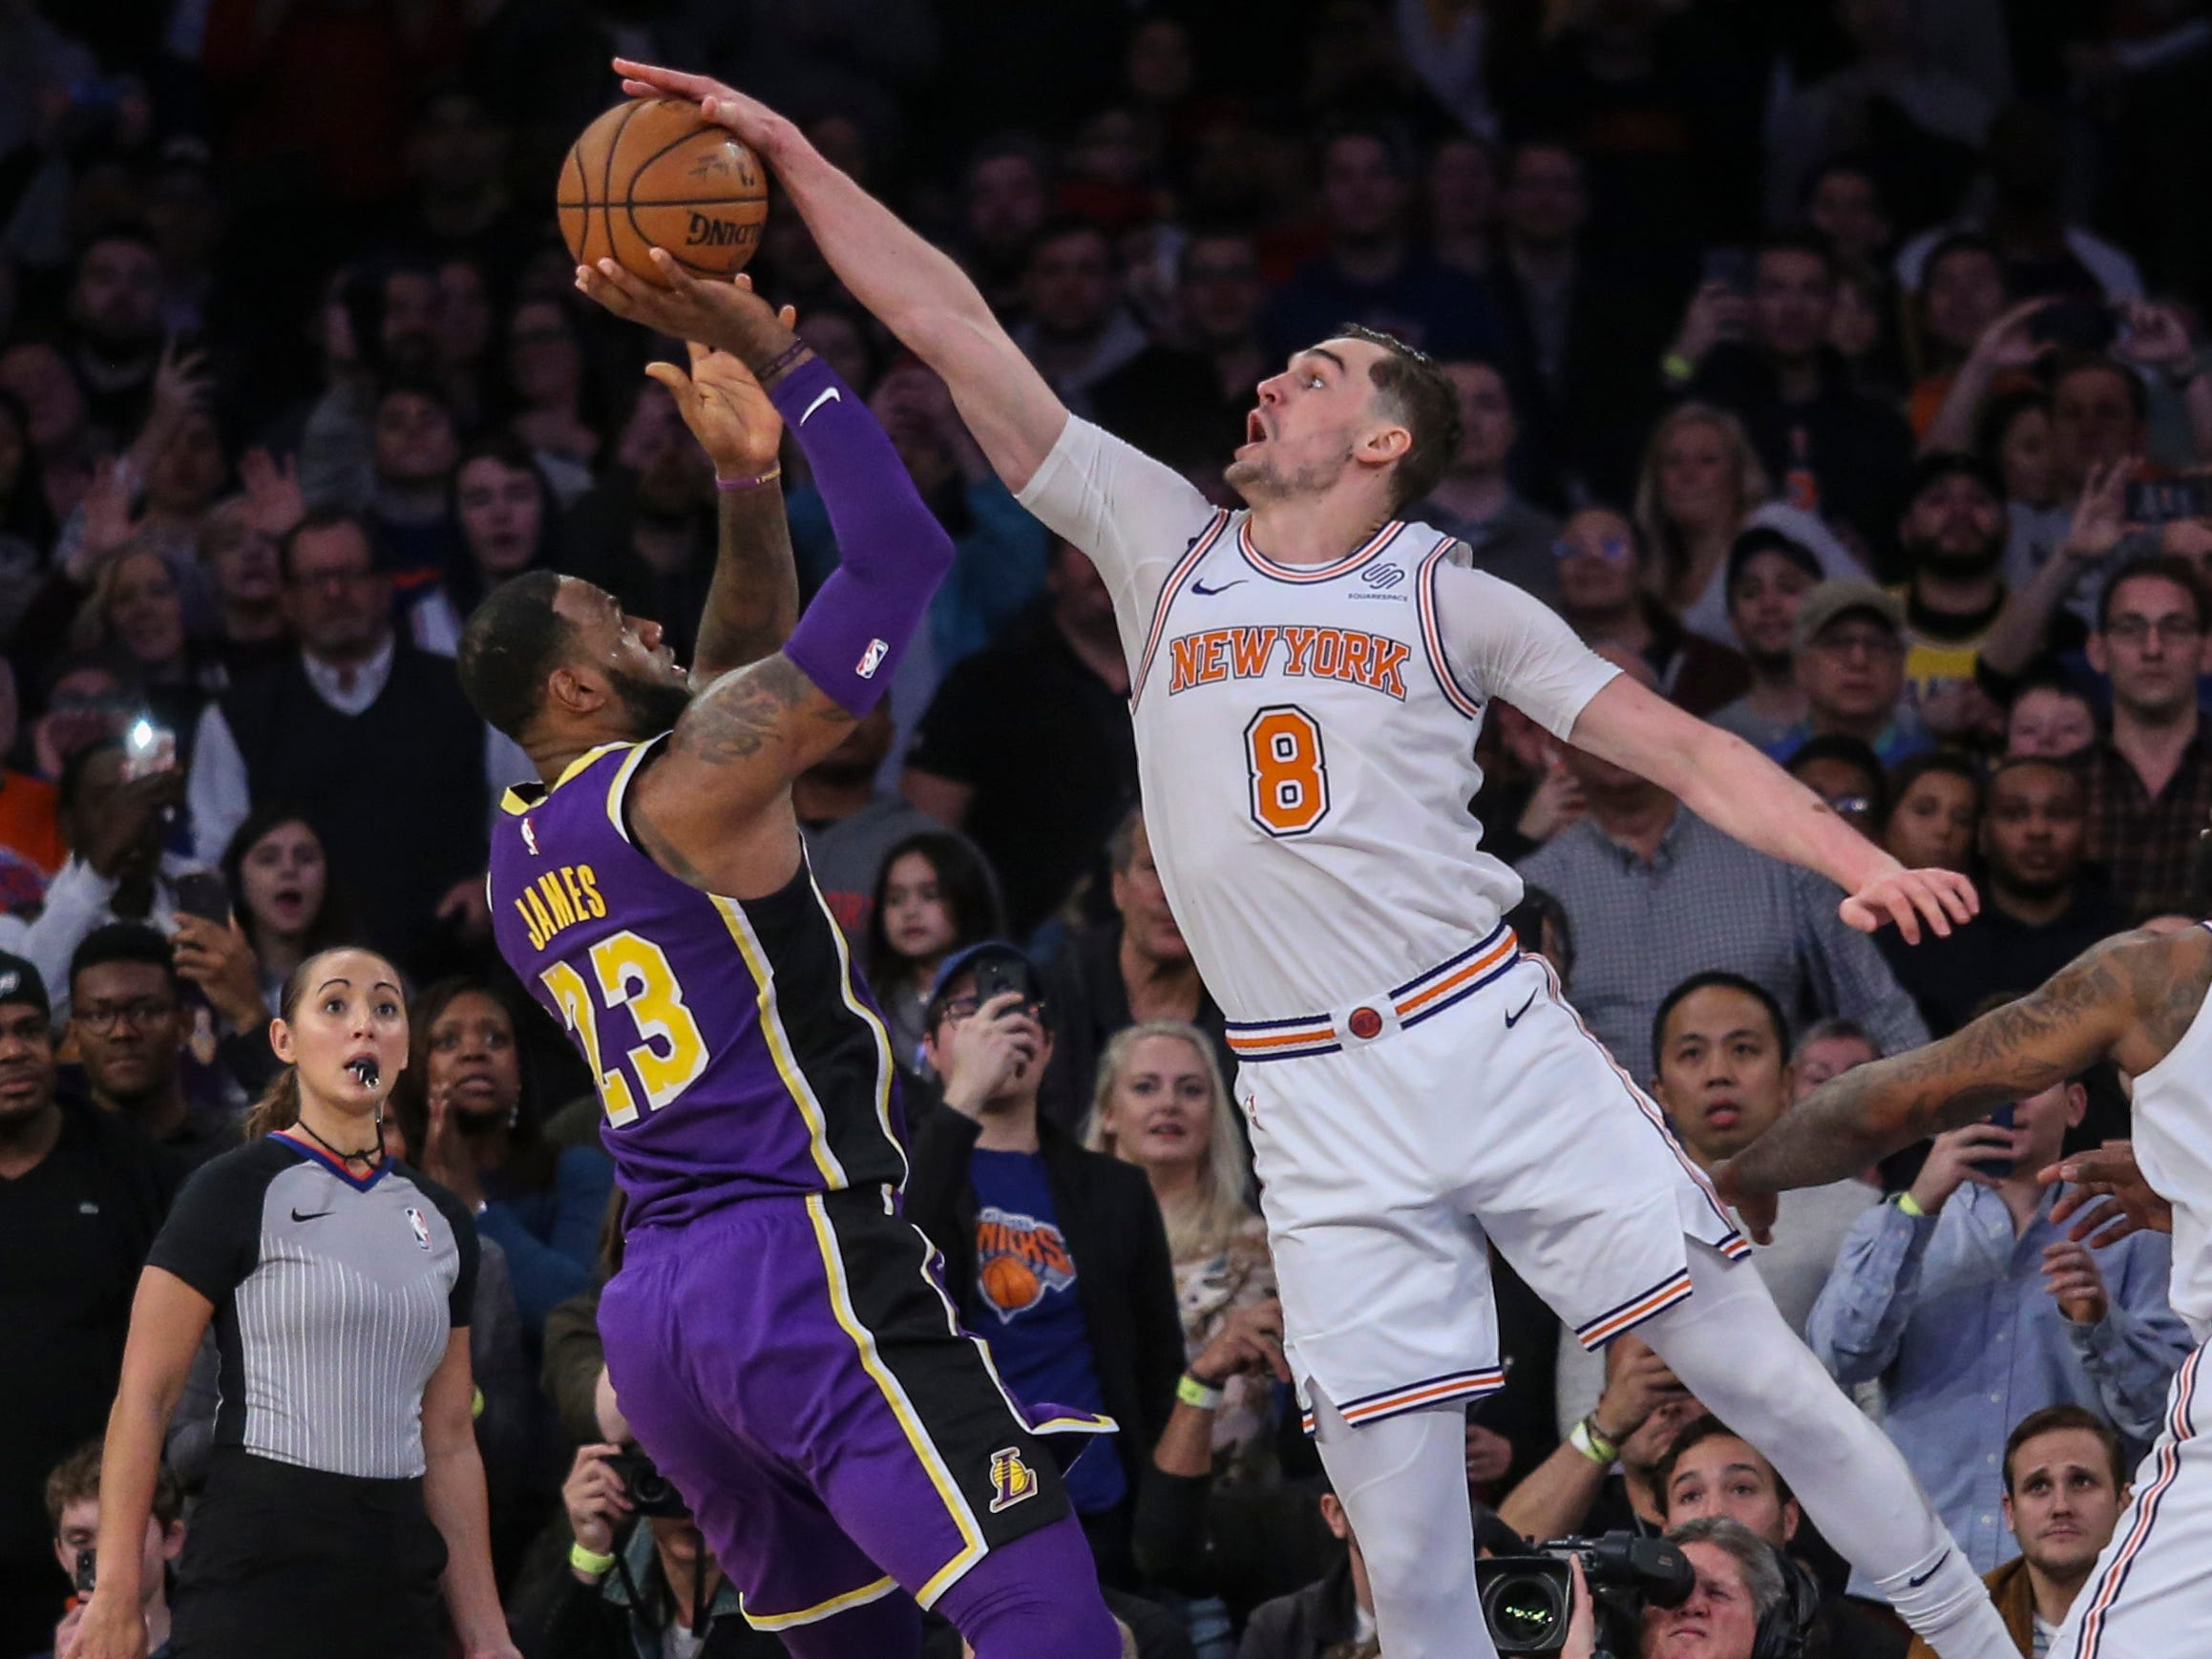 March 17: Mario Hezonja blocks LeBron James' last-second shot to seal the Knicks' one-point win over the Lakers.